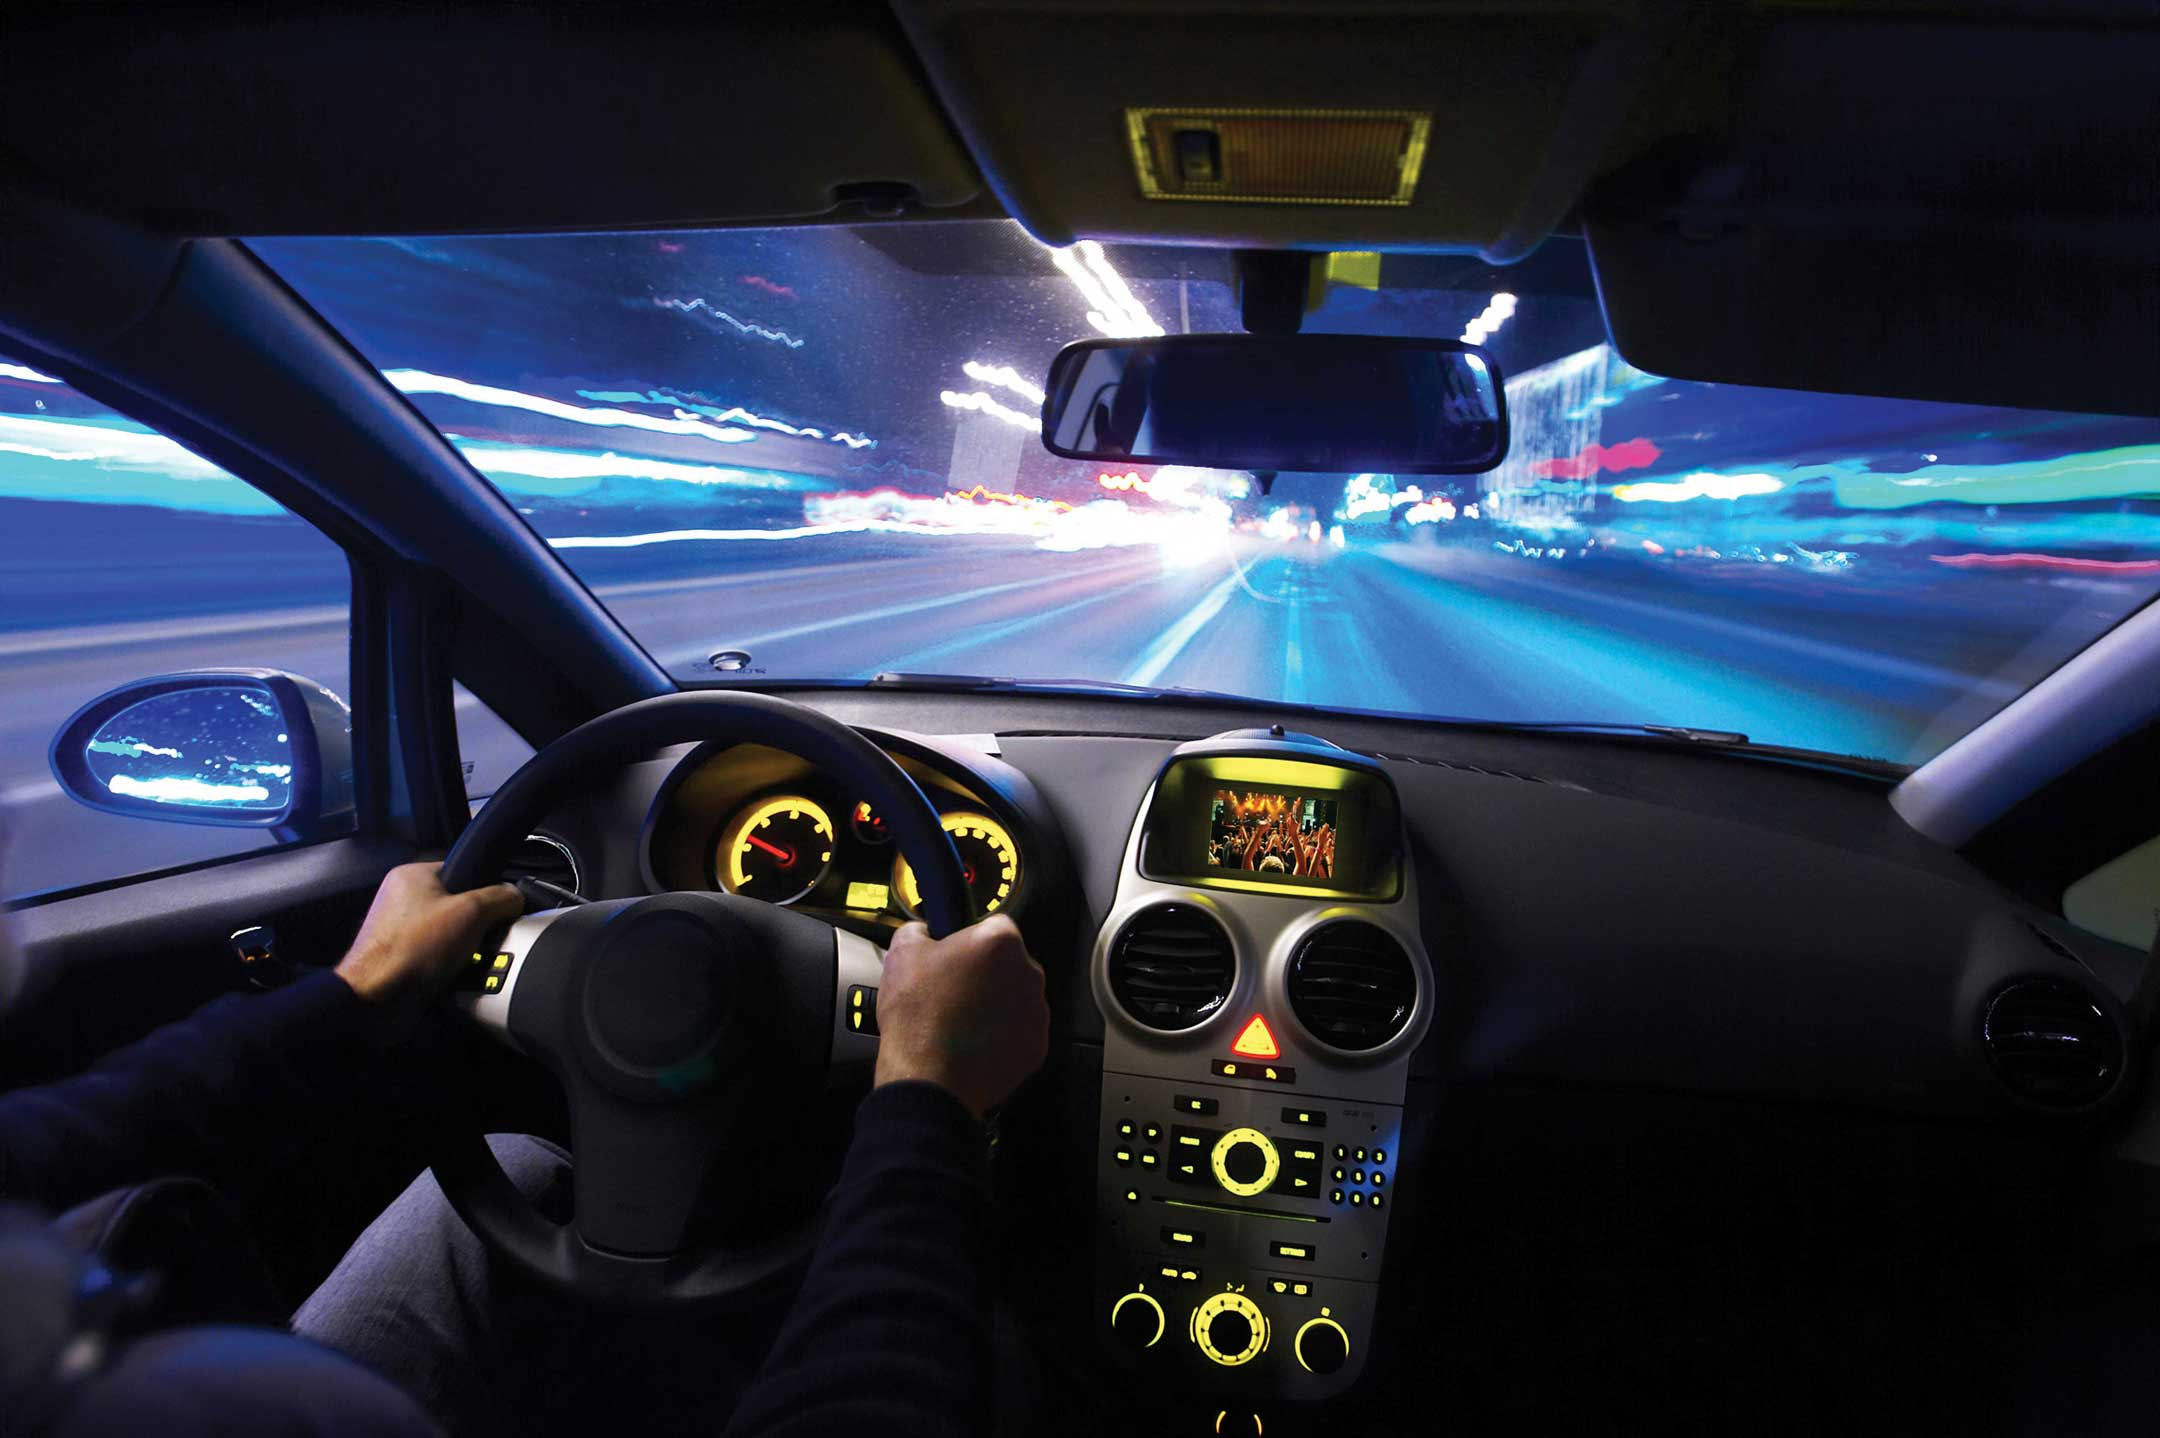 NXP and AliOS Partner for New In-Vehicle Experiences